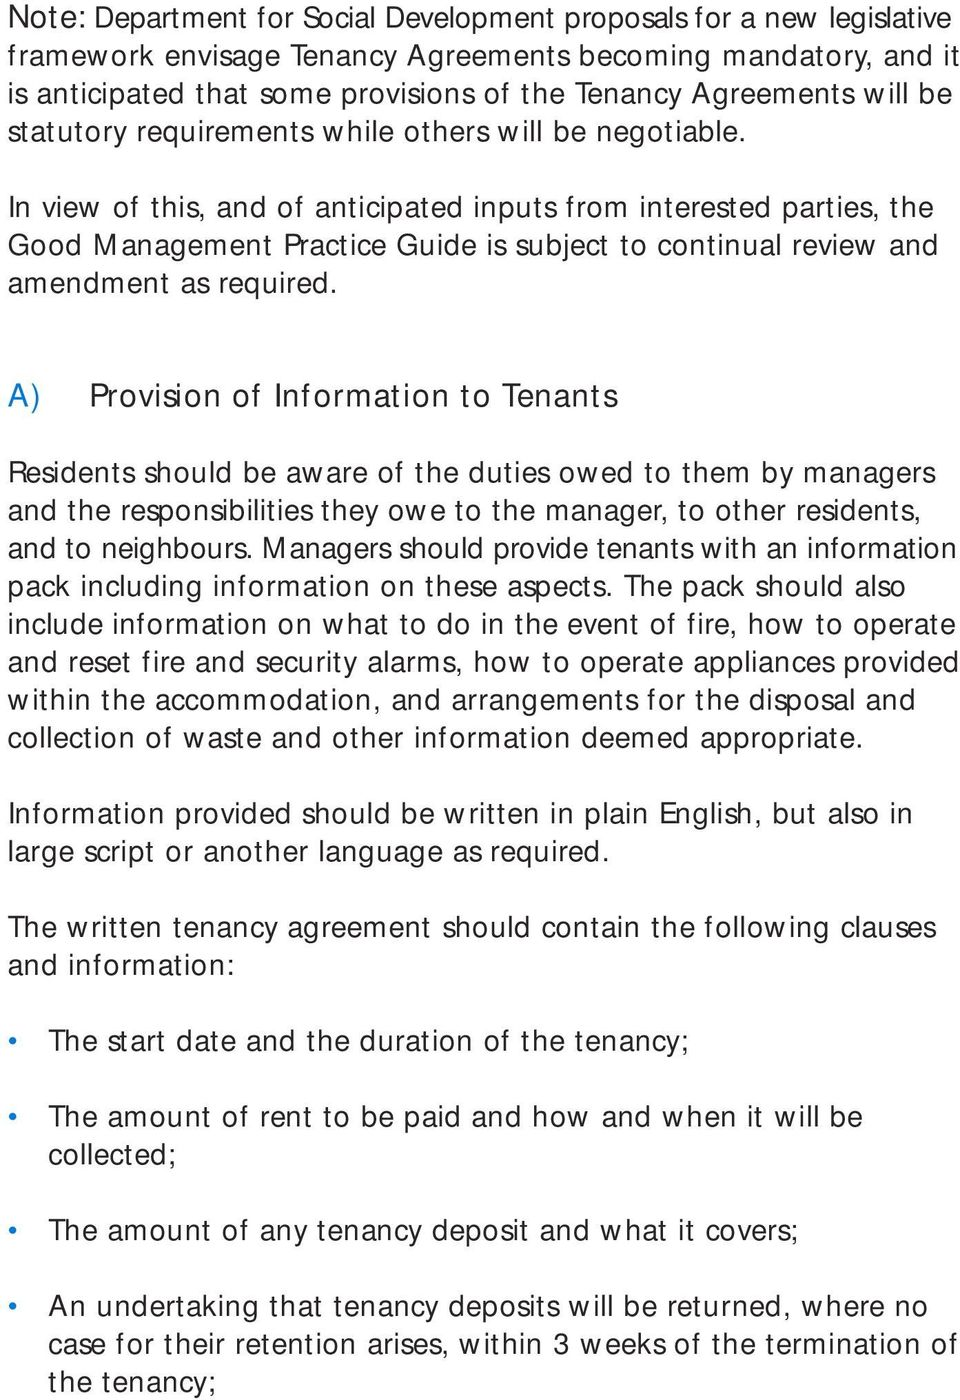 In view of this, and of anticipated inputs from interested parties, the Good Management Practice Guide is subject to continual review and amendment as required.